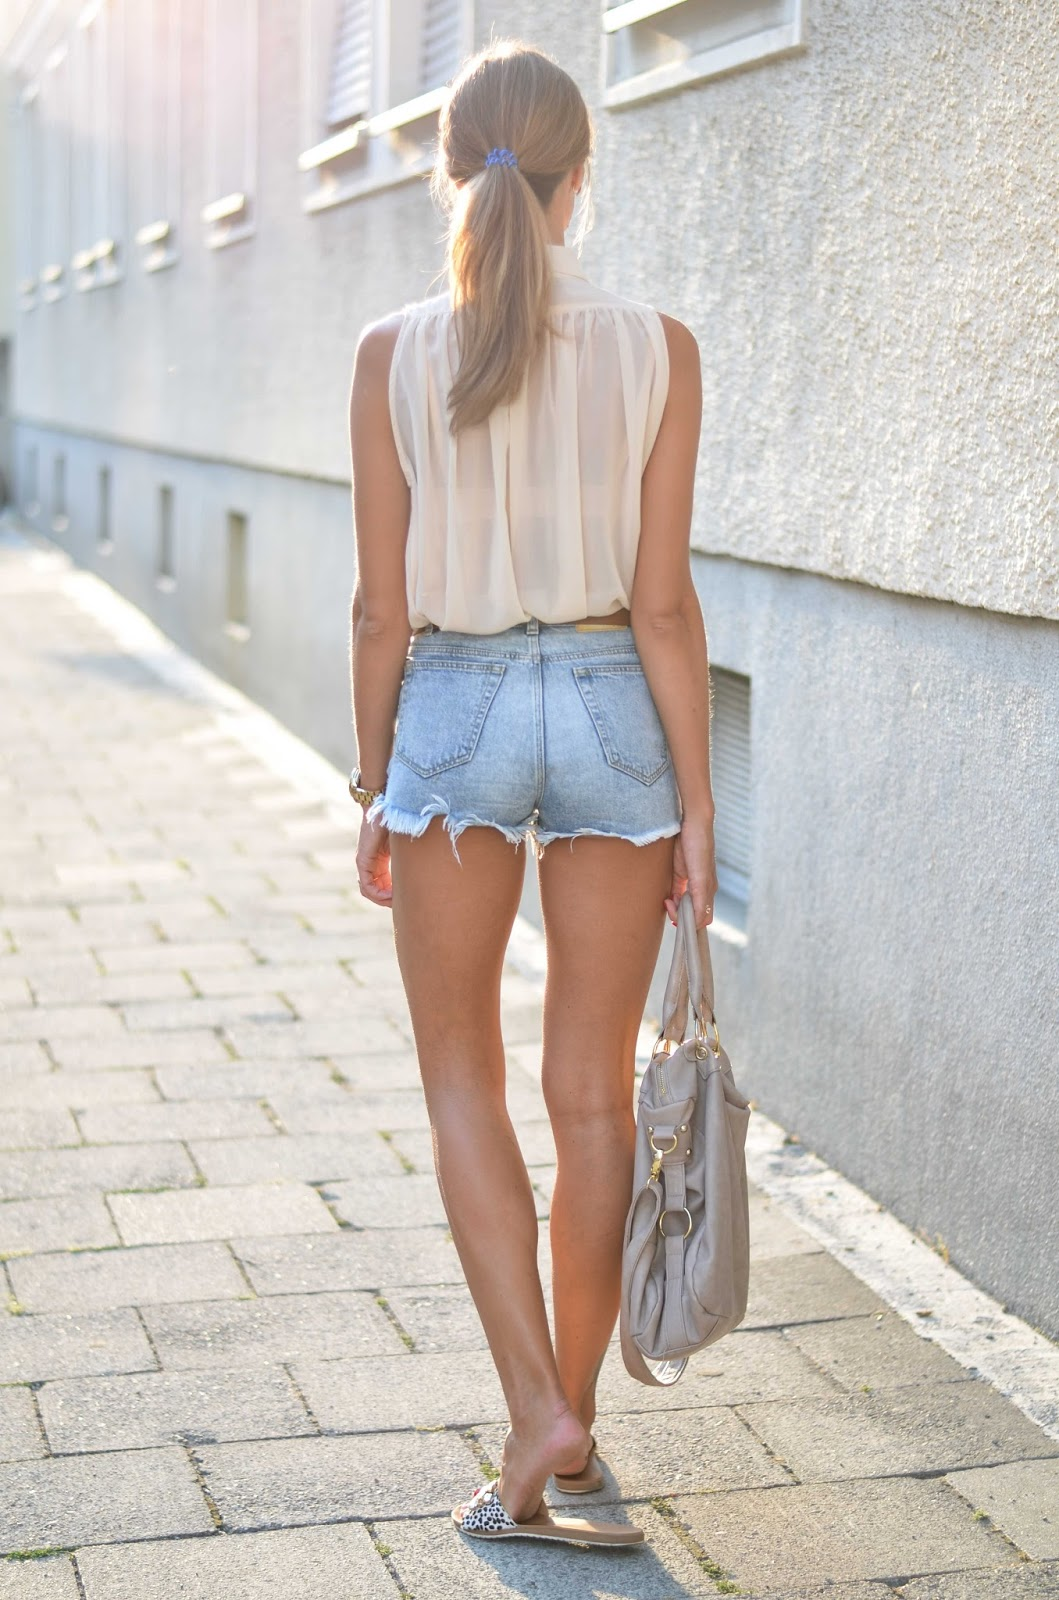 kristjaana mere zara denim shorts sheer beige top summer fashion outfit